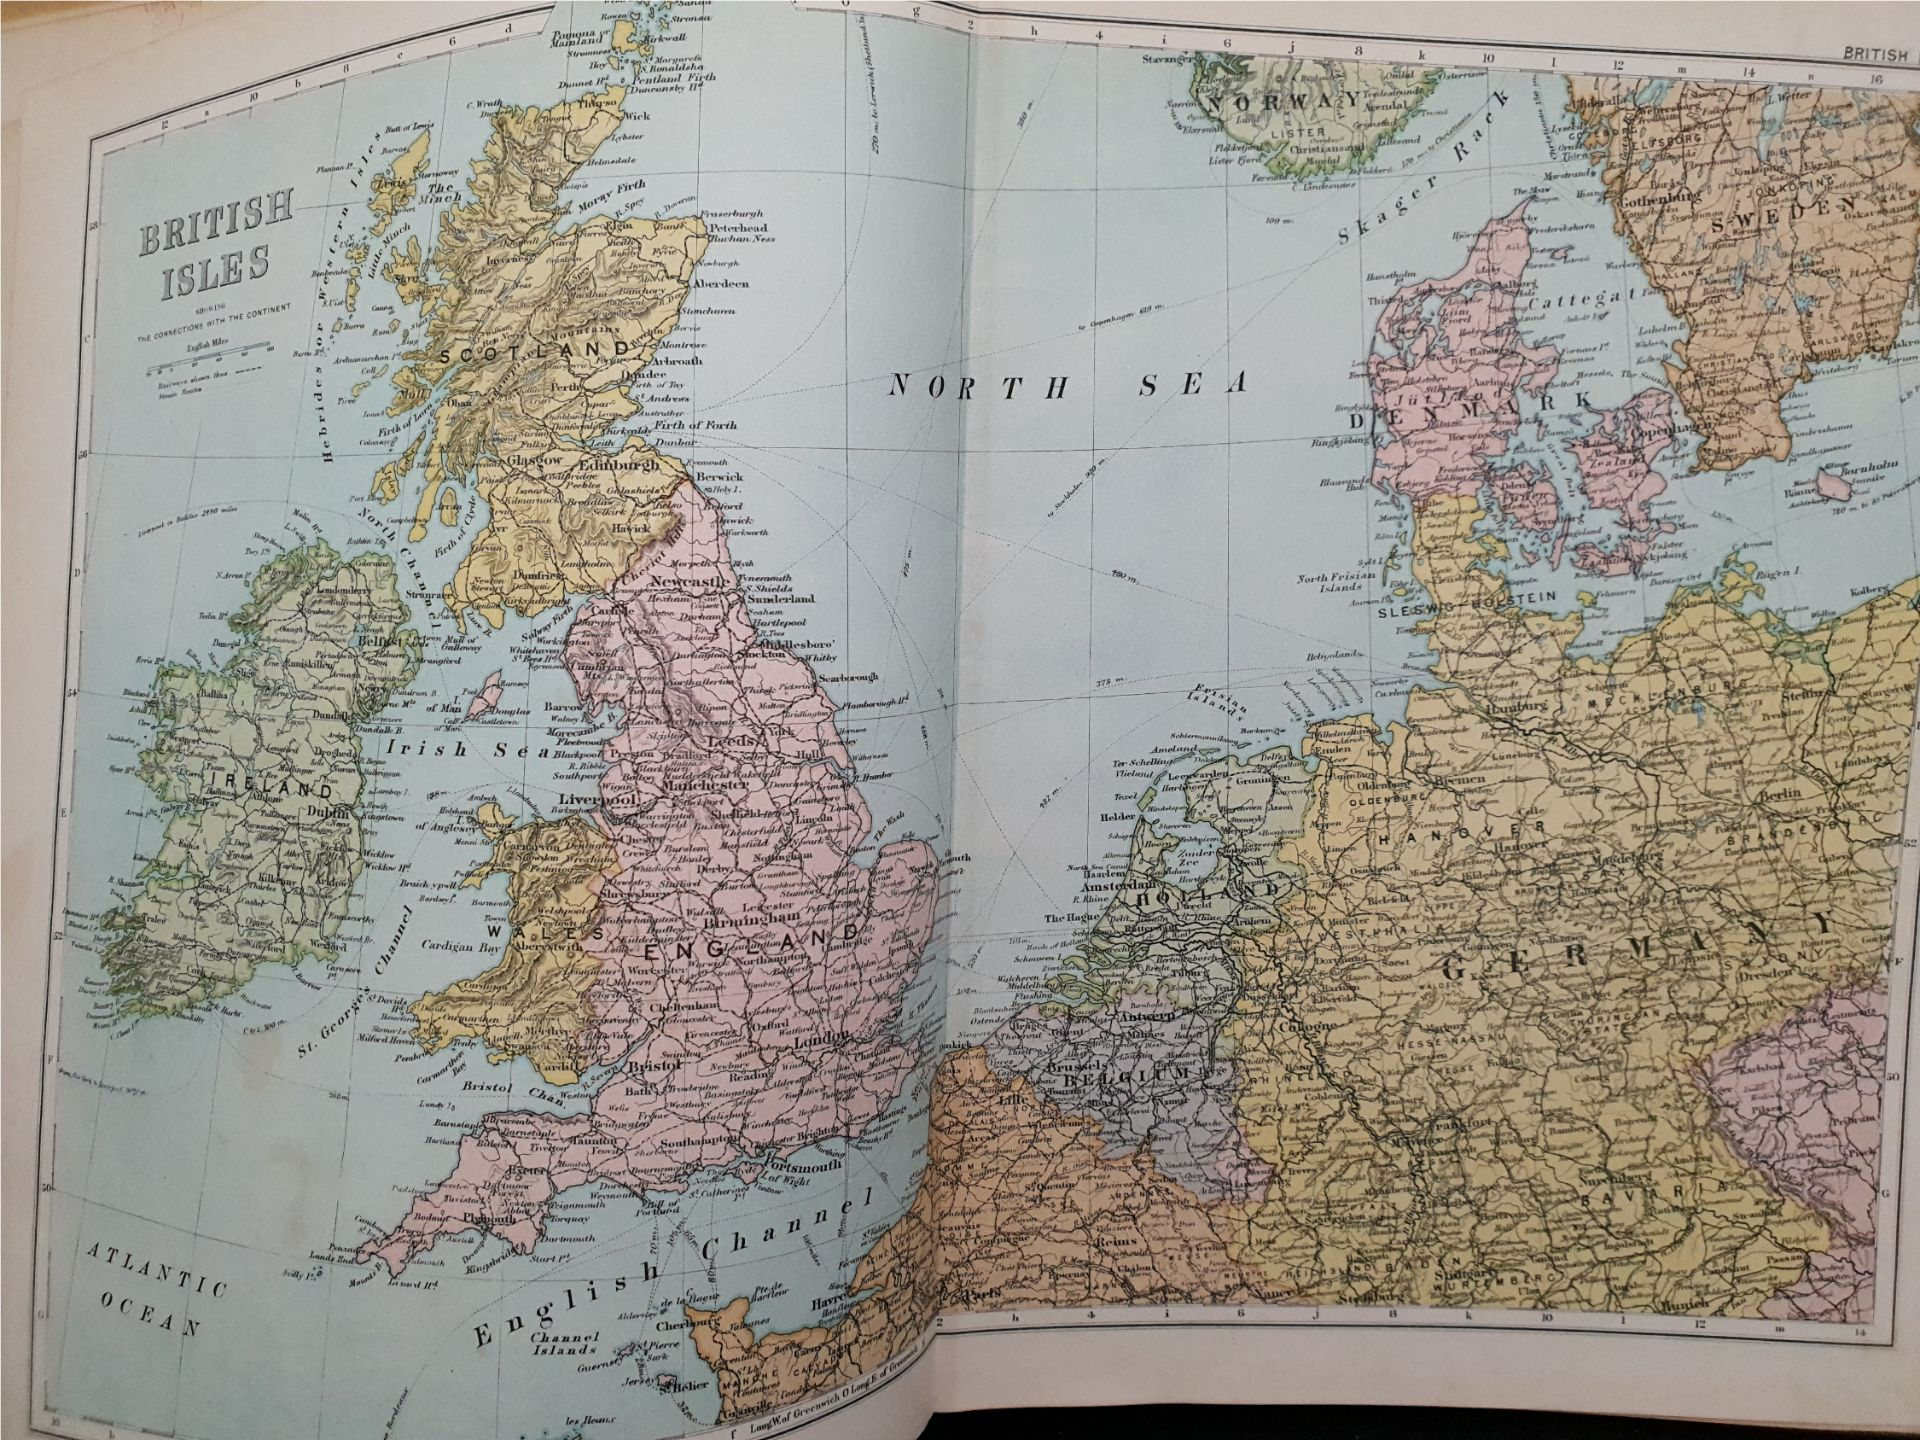 Antiques 1899 Book Atlas Of The British Isles G W Bacon & Co. - Image 8 of 15